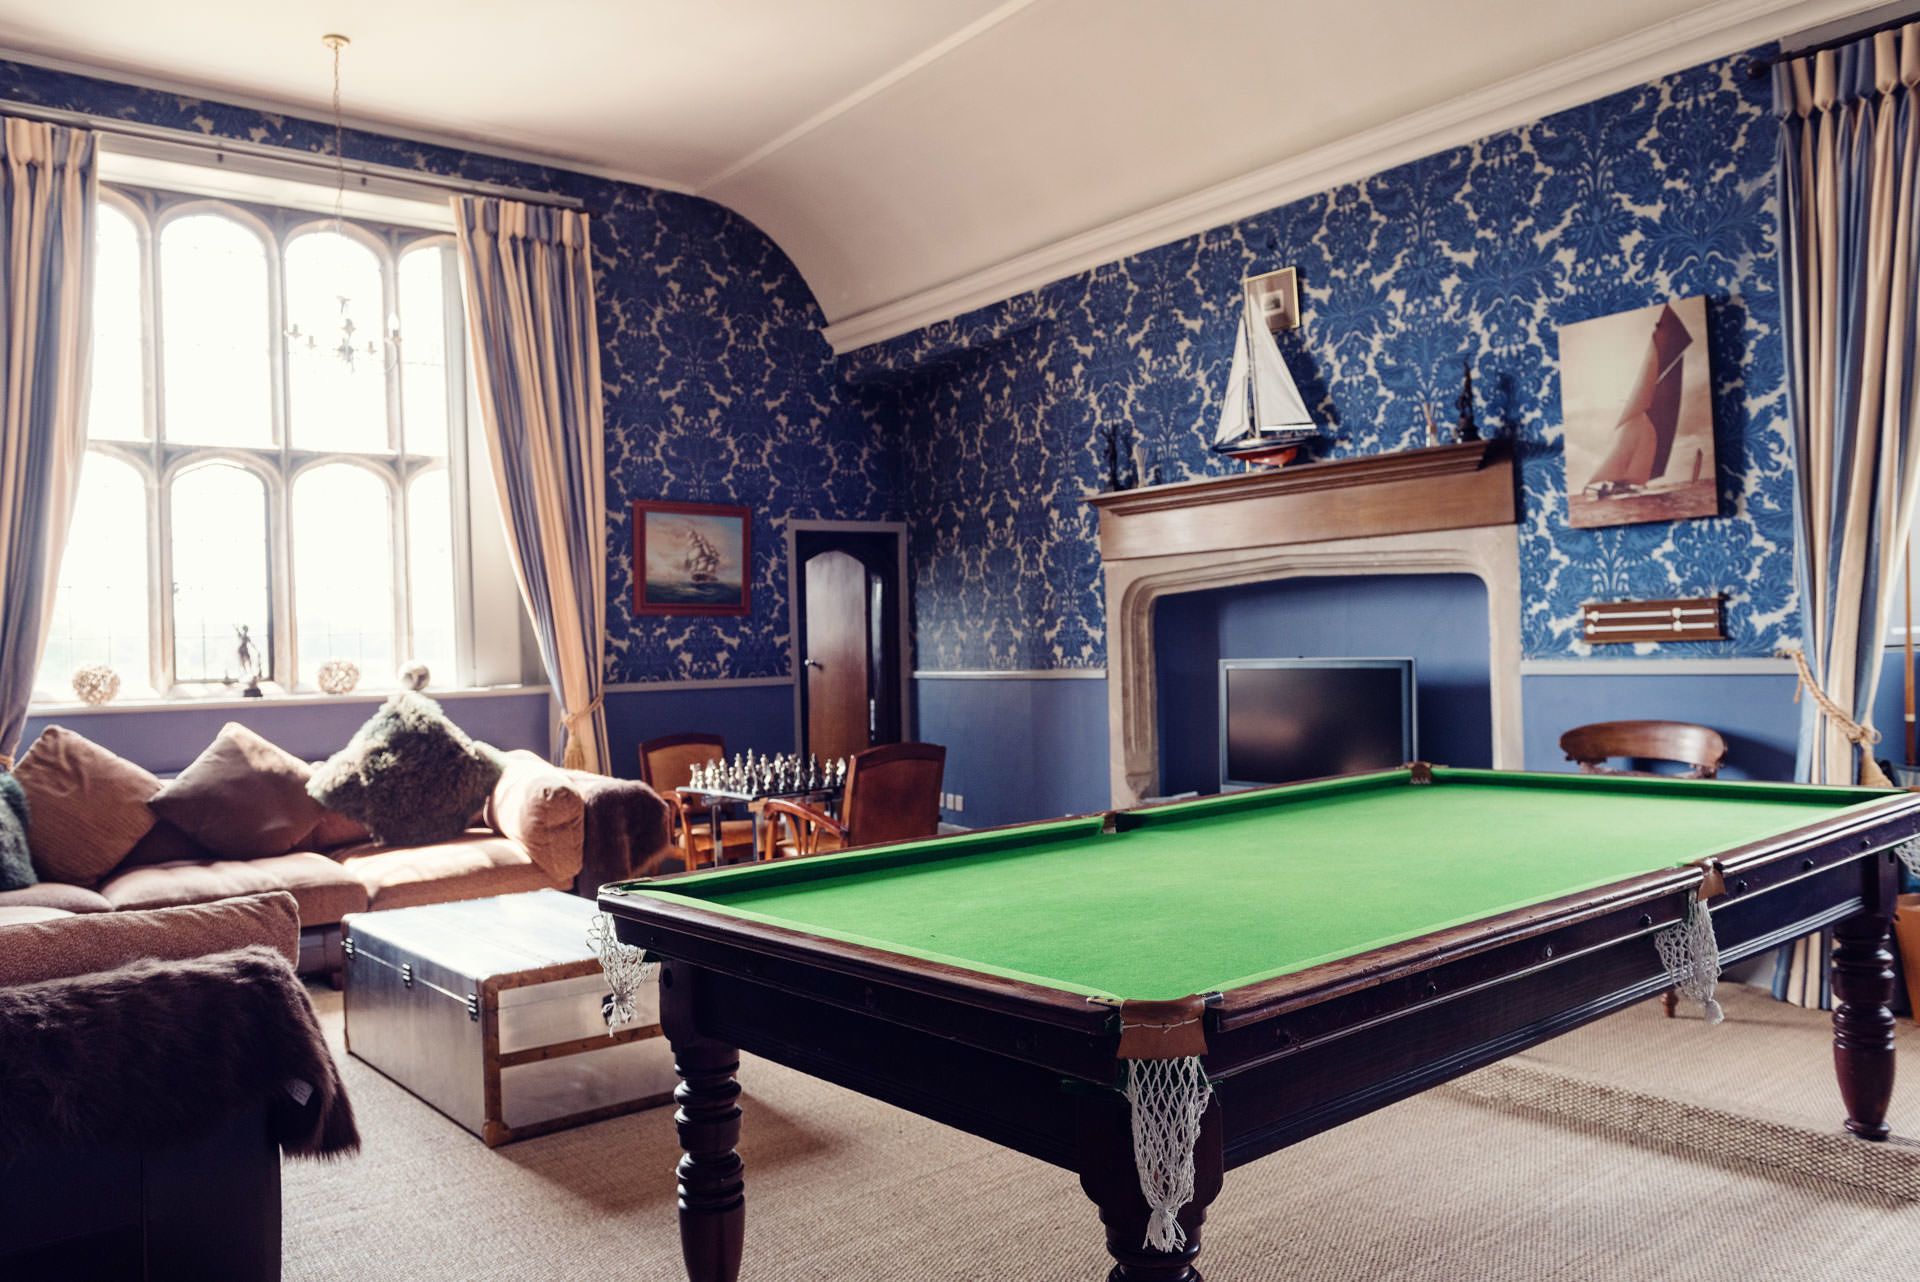 The Blue Room, relaxation room, with snooker table at Hengrave Hall, wedding venue in Suffolk, East Anglia